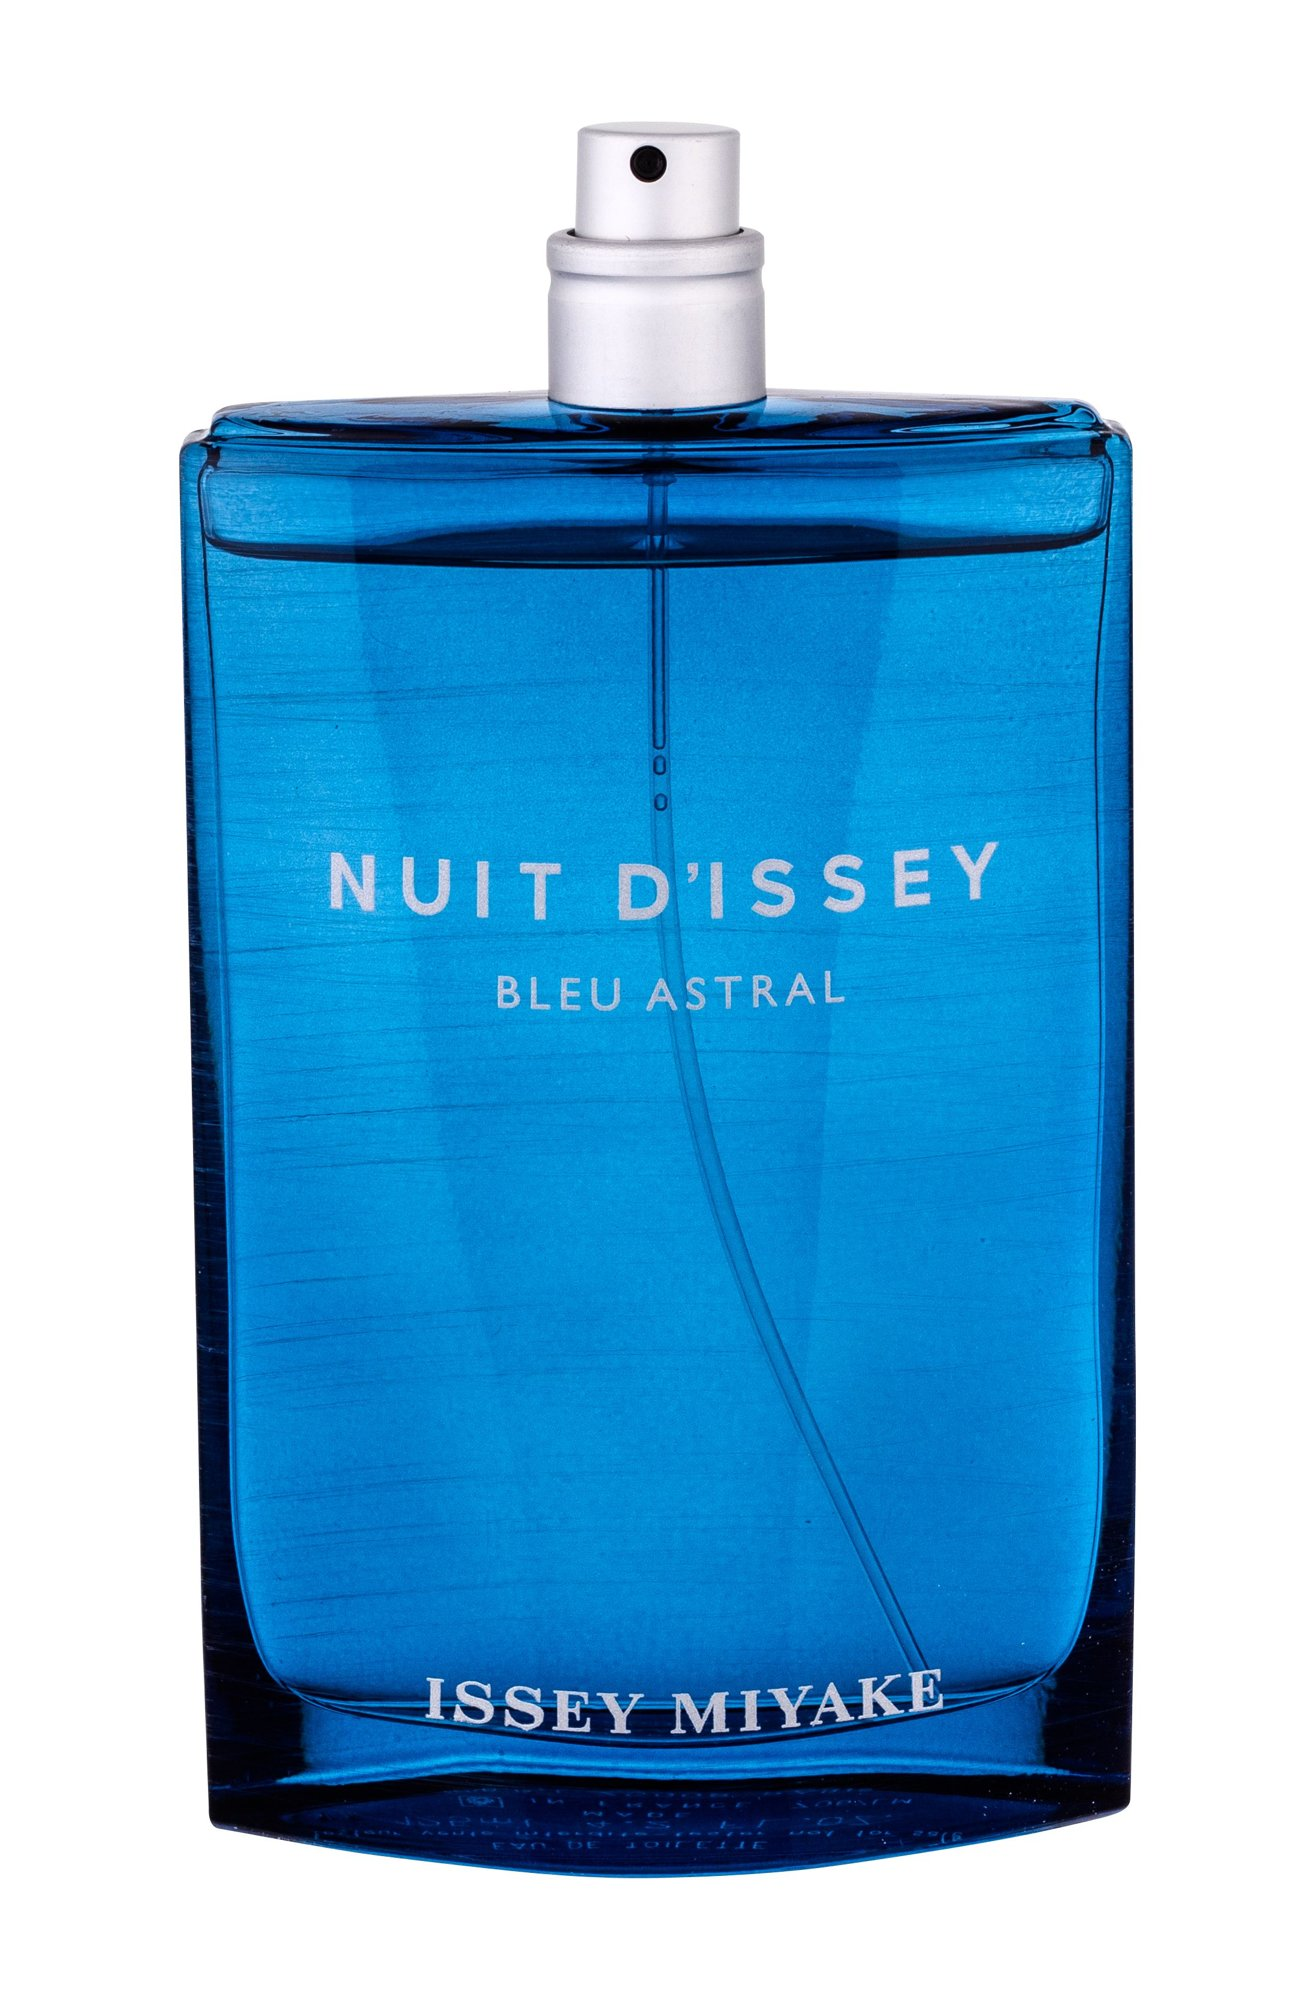 Issey Miyake Nuit d´Issey Bleu Astral EDT 125ml